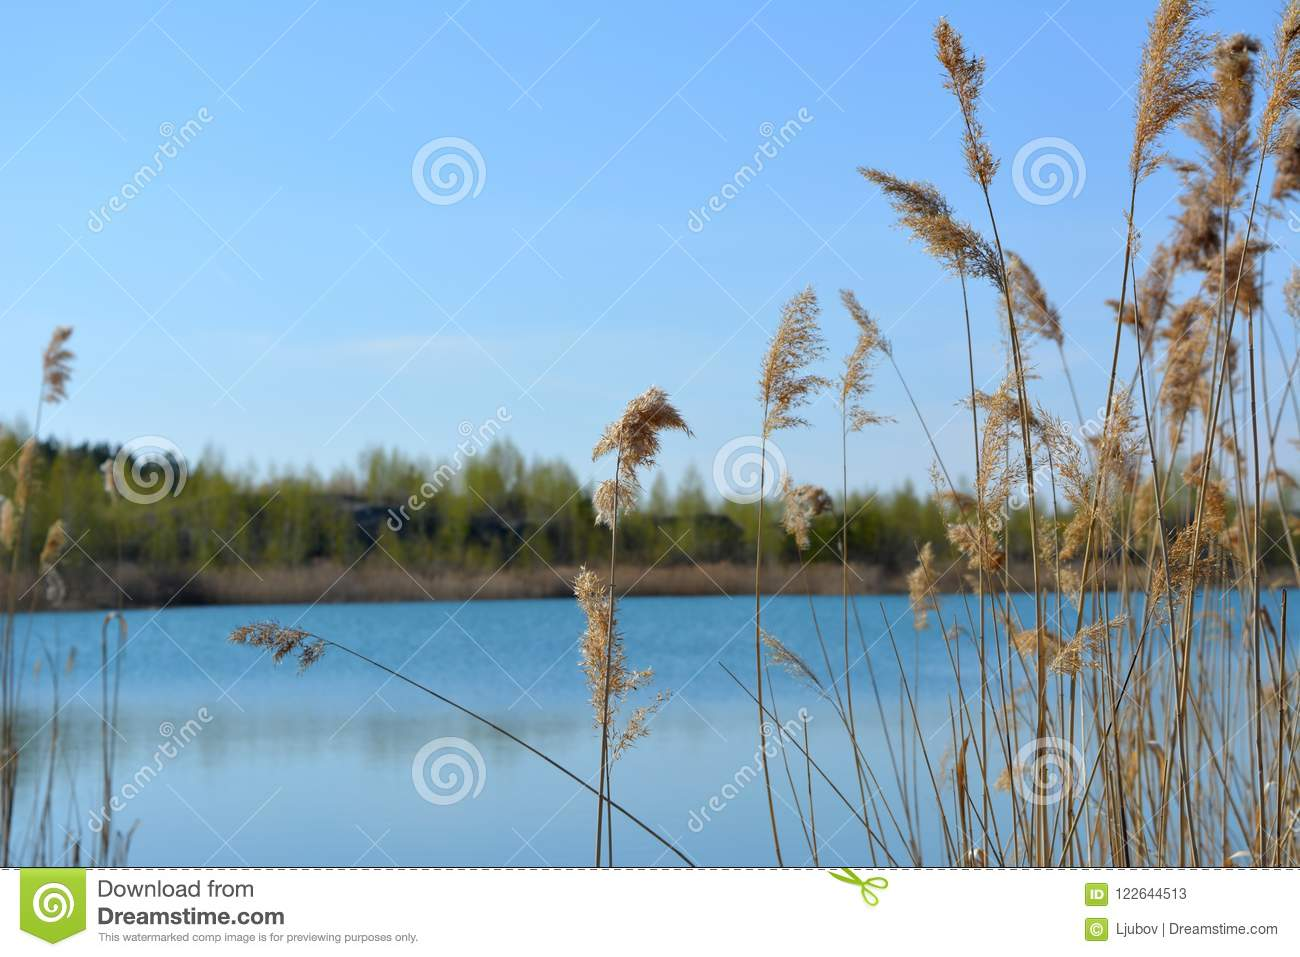 Spring scene with view to lake through thickets of bulrush. Blue sky and water in spring day.